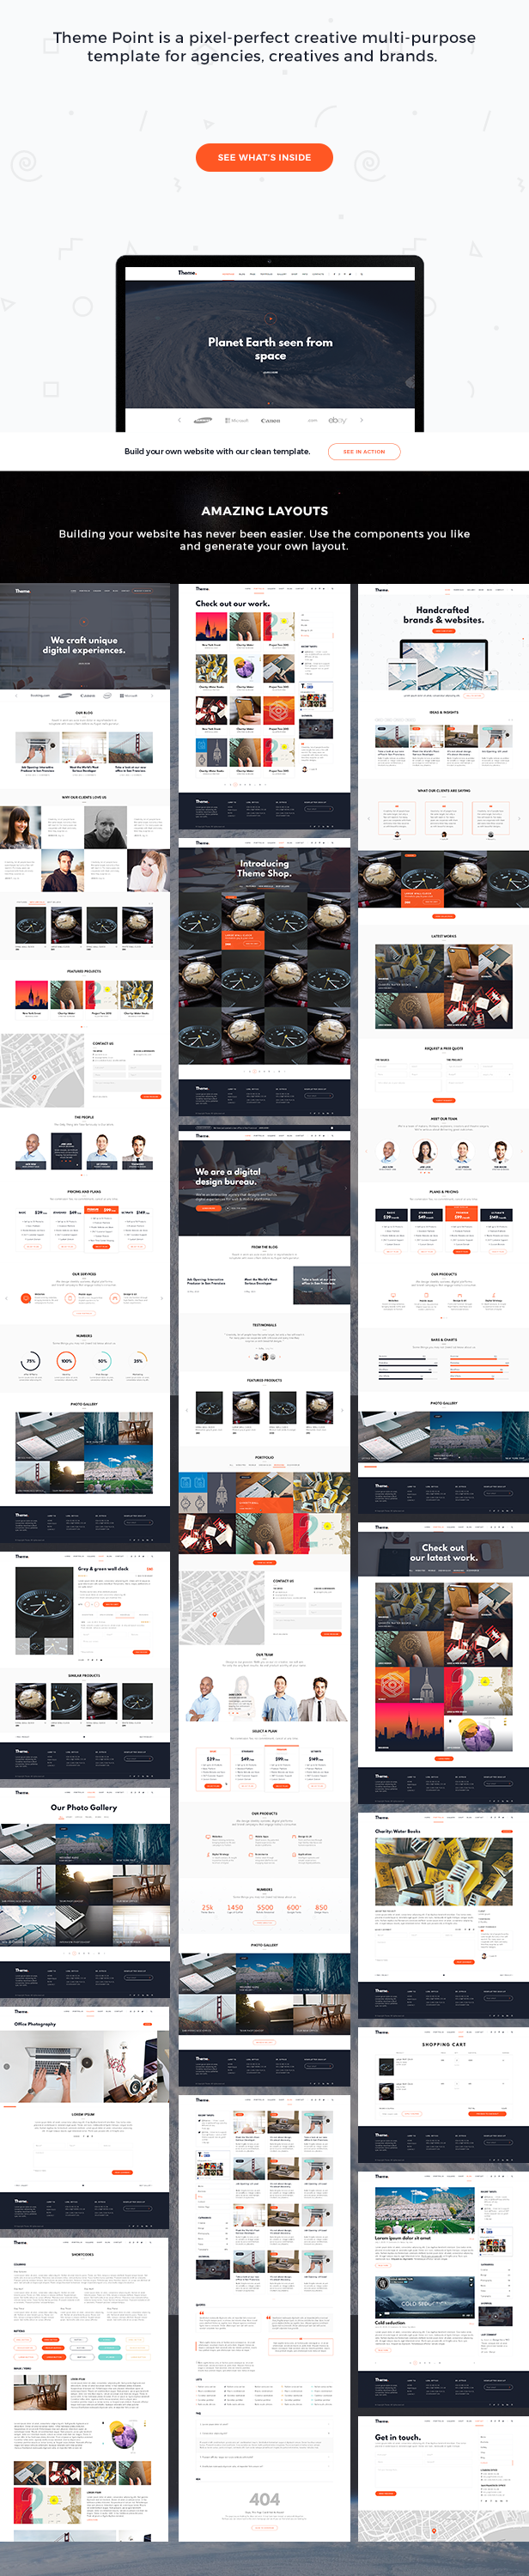 Theme Point - Business Agency PSD Template - 2